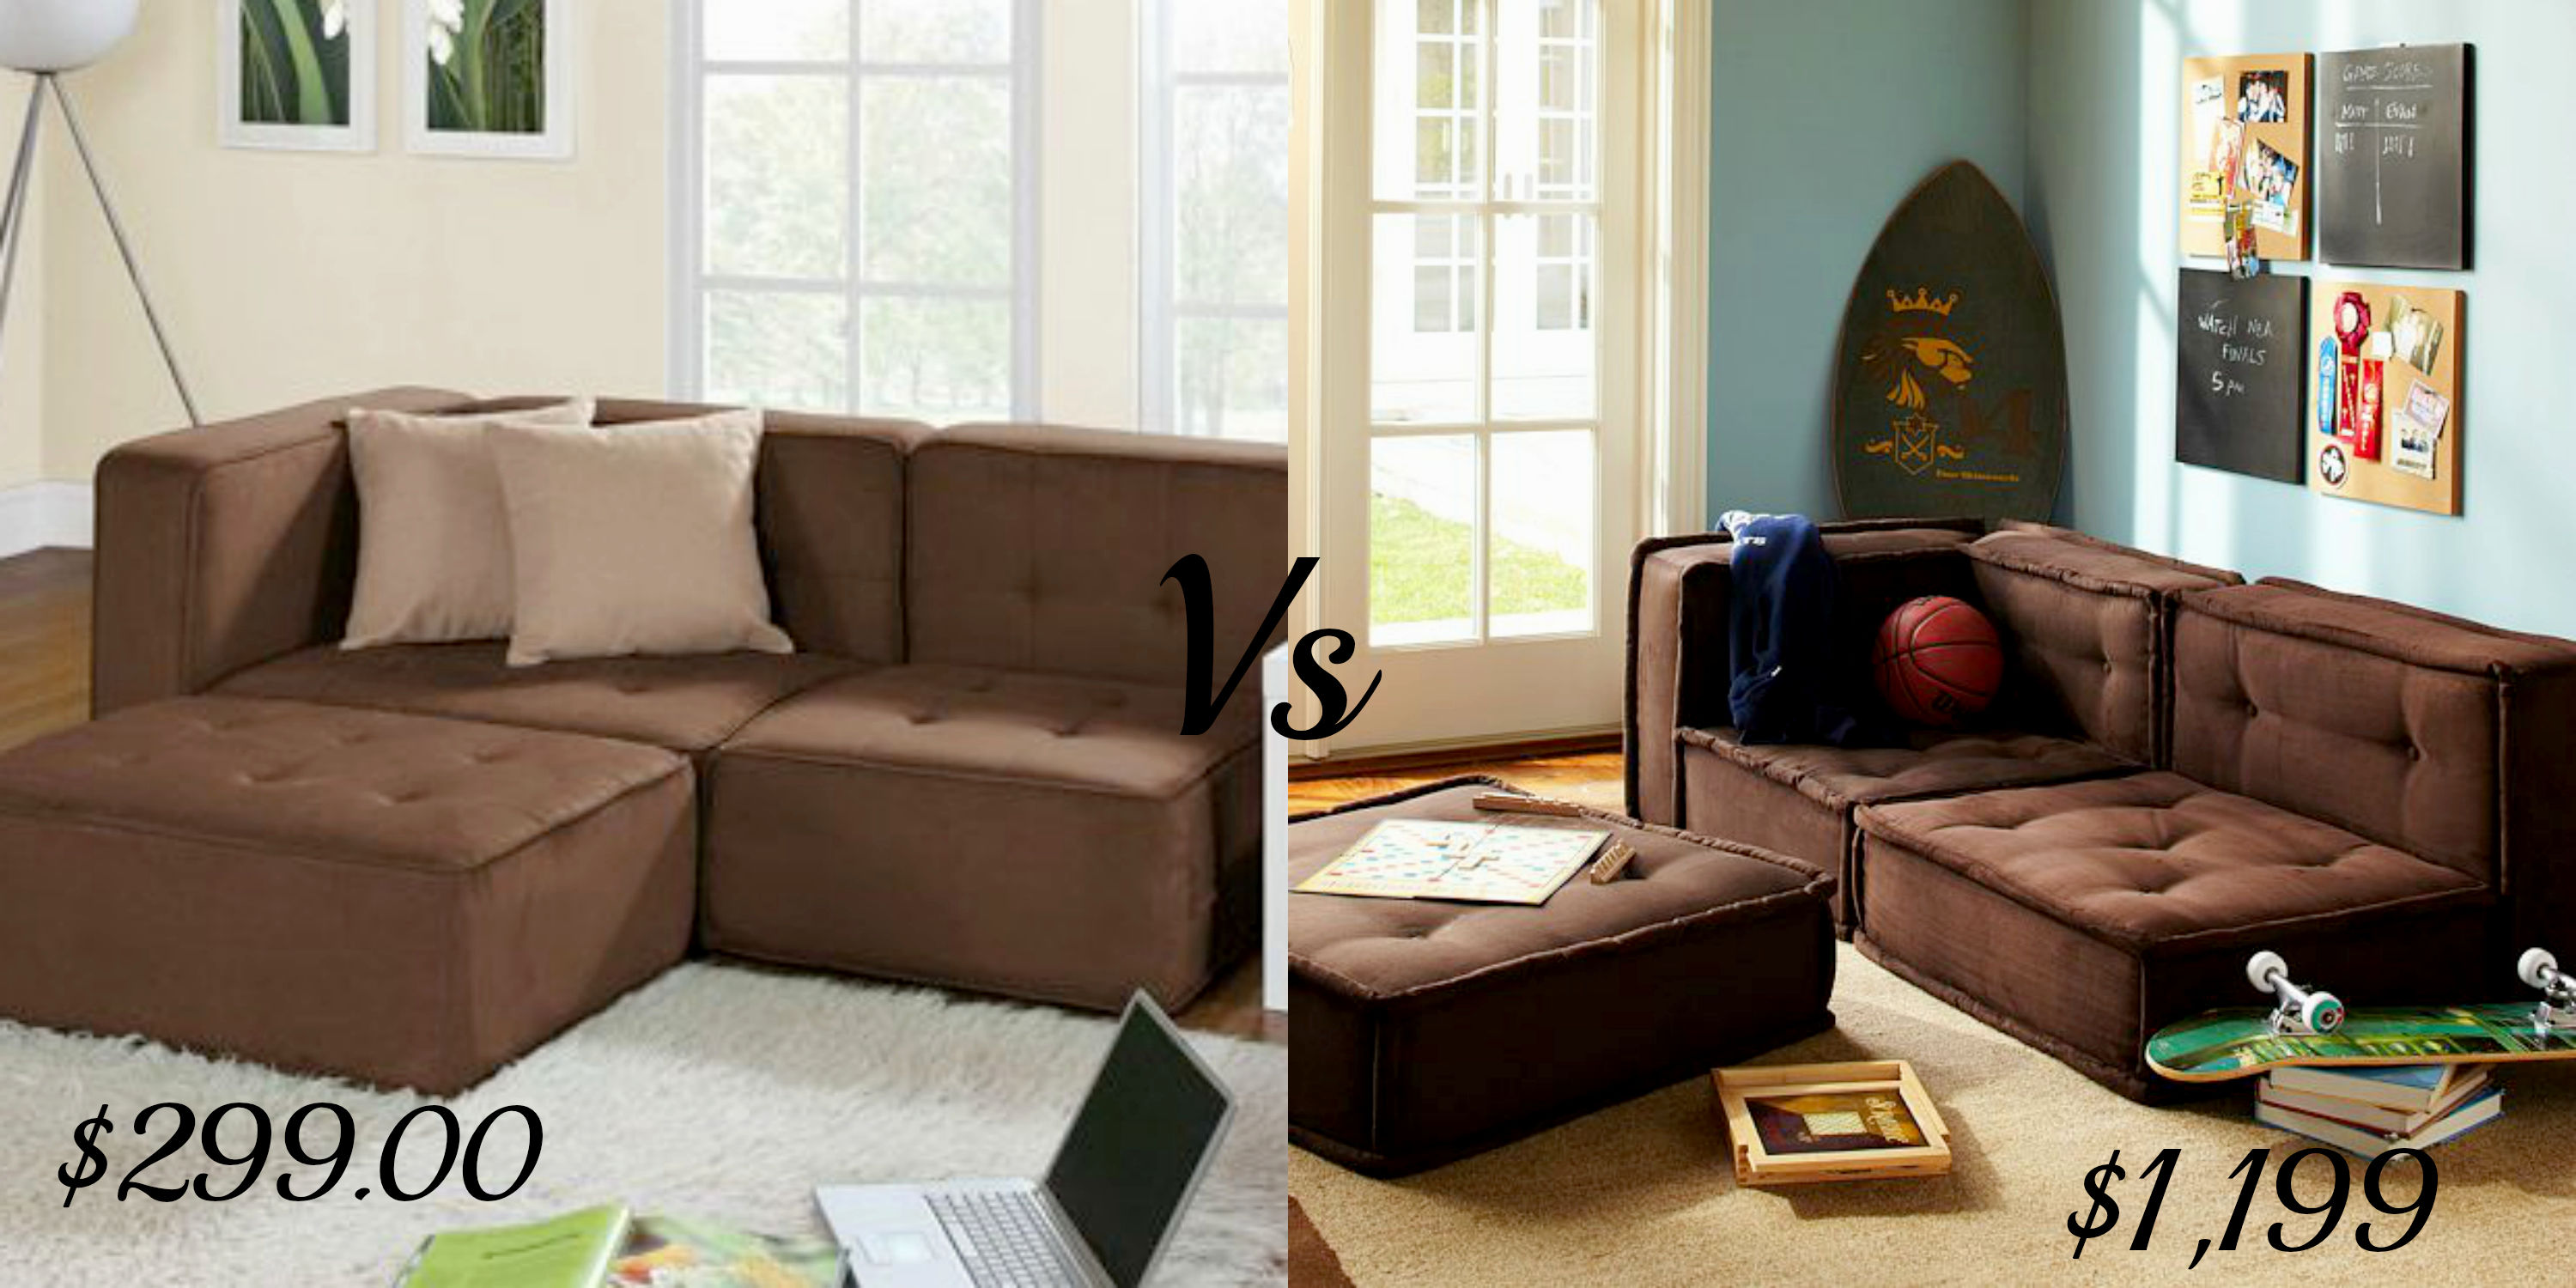 superb pottery barn sleeper sofa picture-Lovely Pottery Barn Sleeper sofa Layout